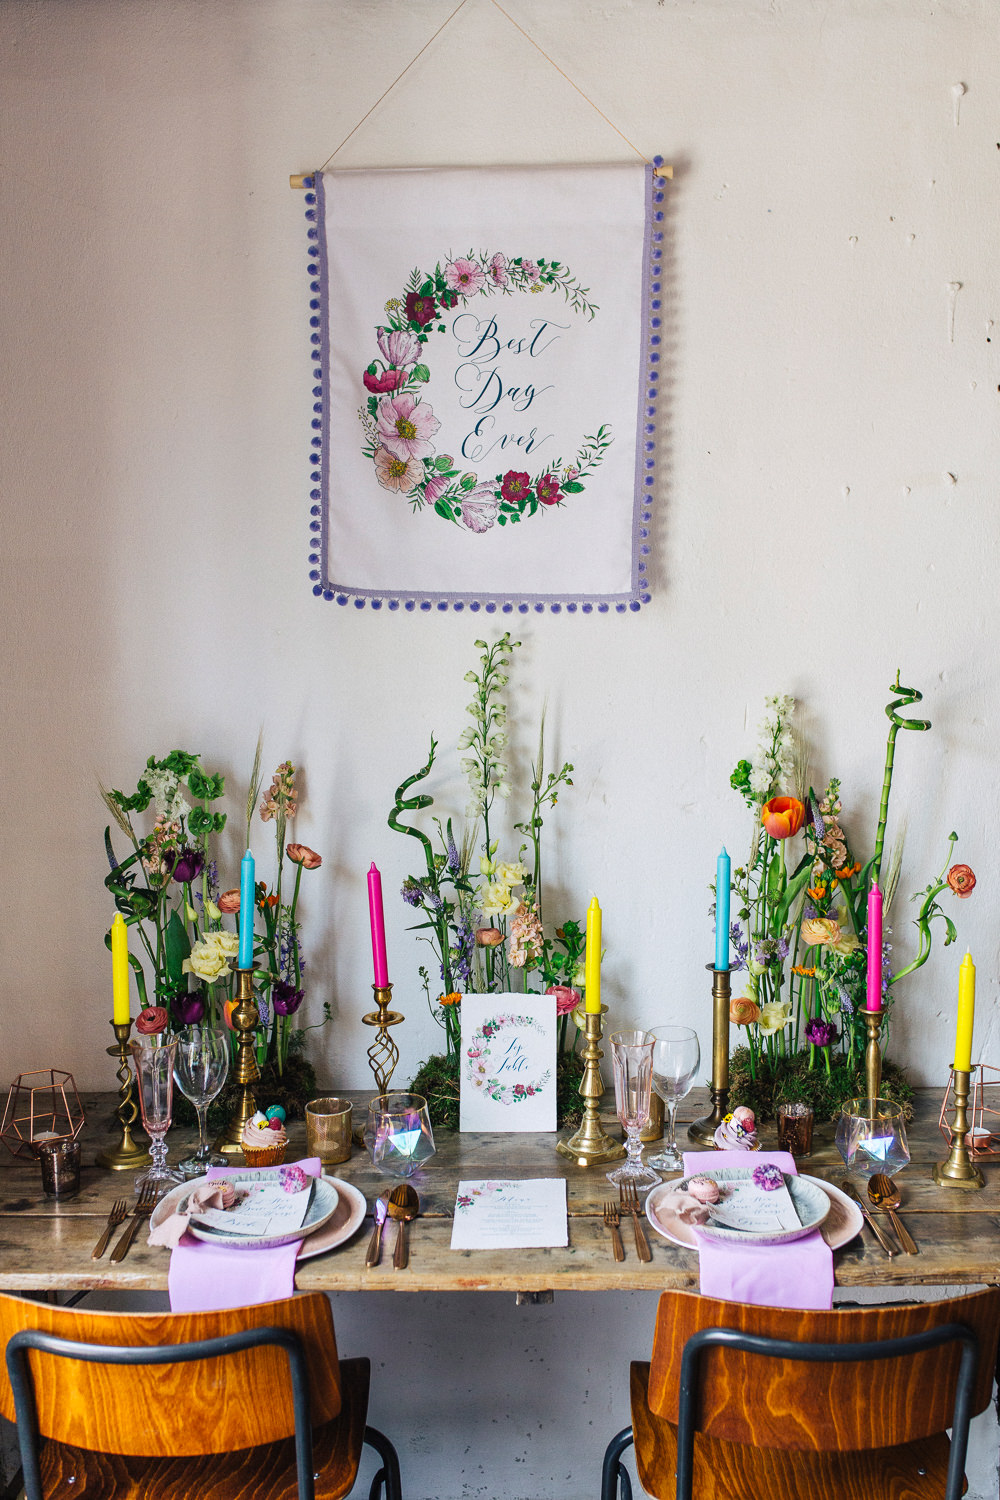 Table Tablescape Decor Candles Meadow Fowers Banner Backdrop Playful Cool Wedding Ideas Sophie Lake Photography